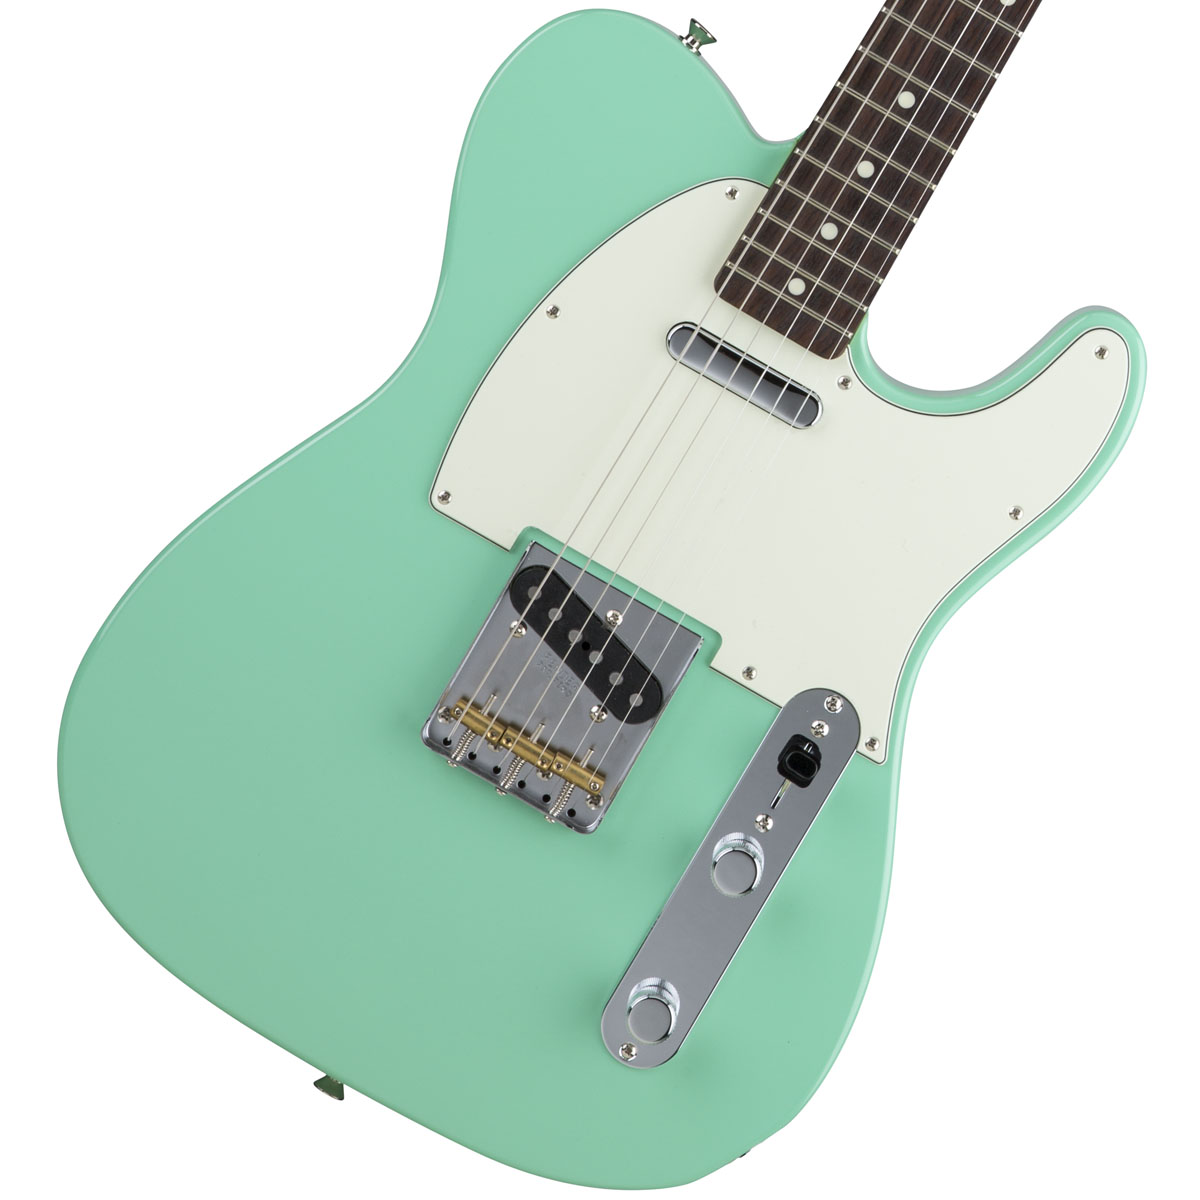 Fender/ Made Made Surf Telecaster in Japan Hybrid 60s Telecaster Surf Green【新宿店】, 瑞穂市:cb76f96f --- jpworks.be